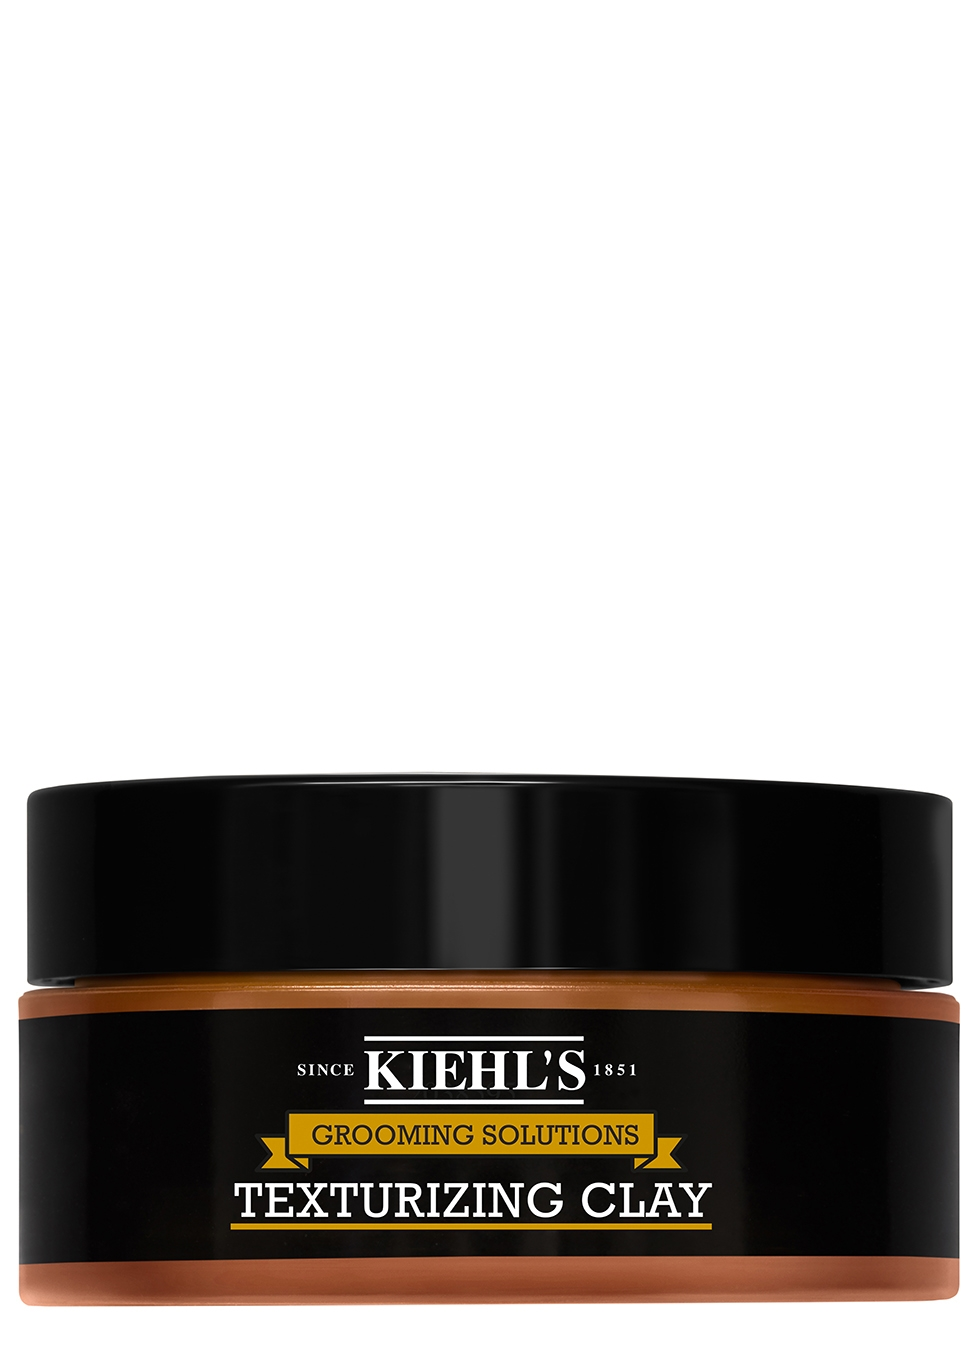 Grooming Solutions Texturizing Clay 50ml